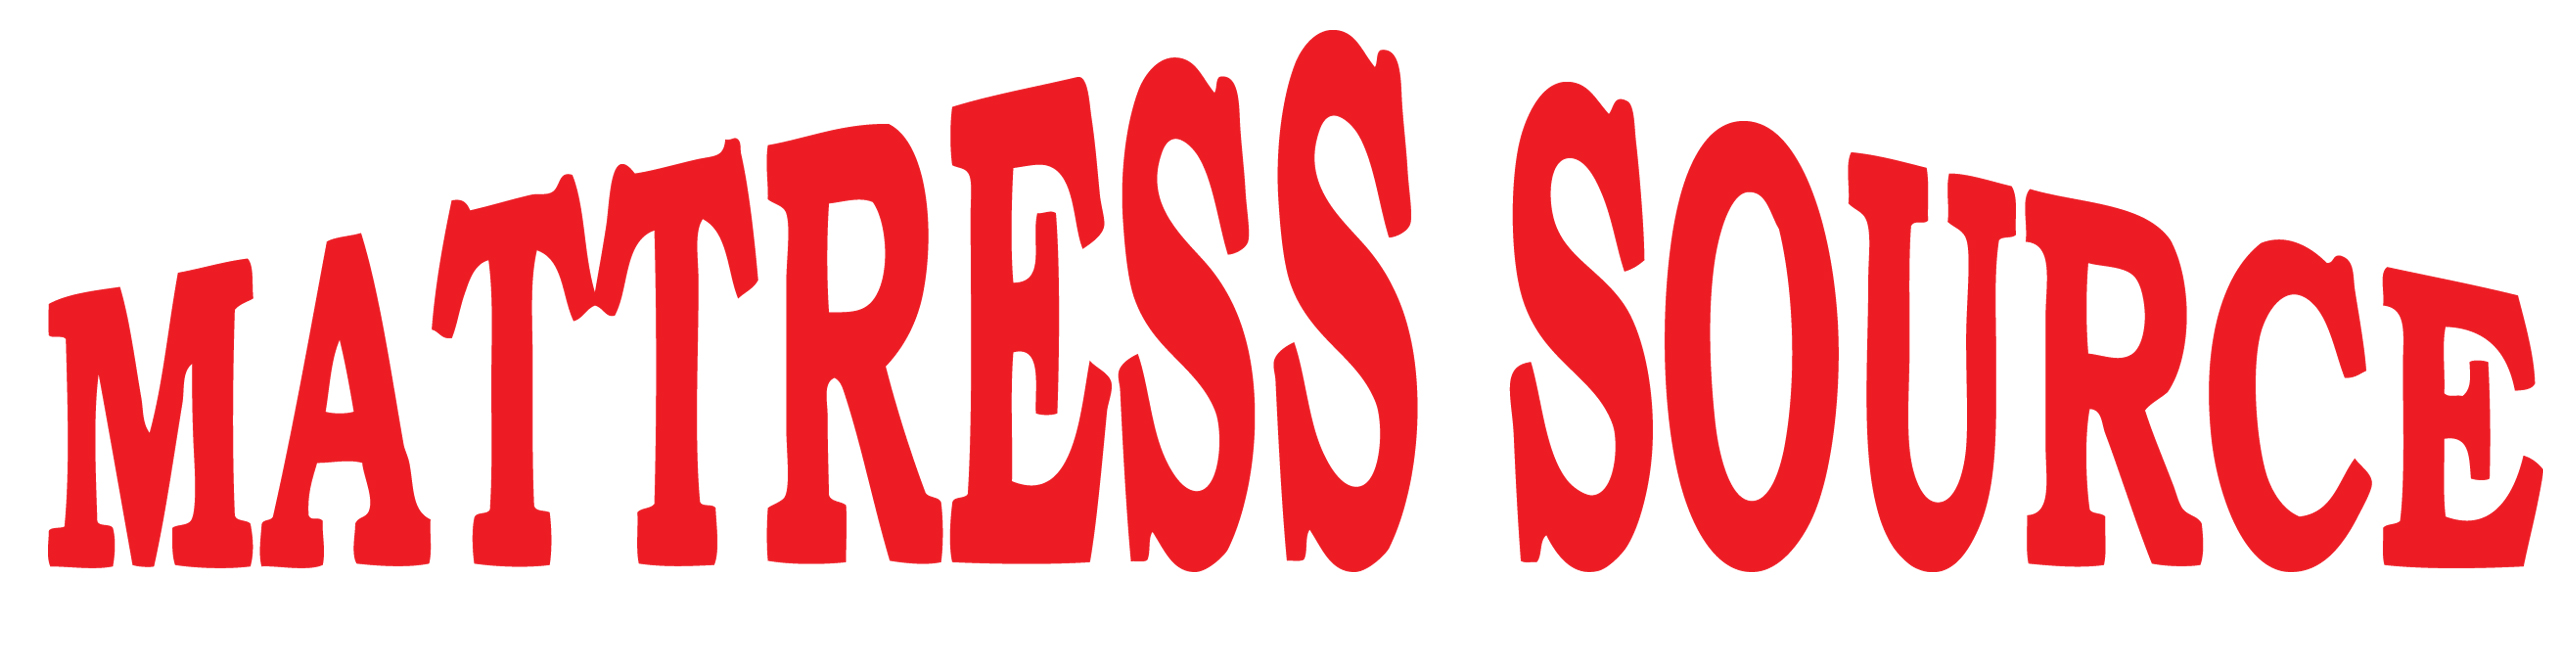 Mattress Center Where You Will Find The Finest Selection Of Mattresses Bed Mattress Sale